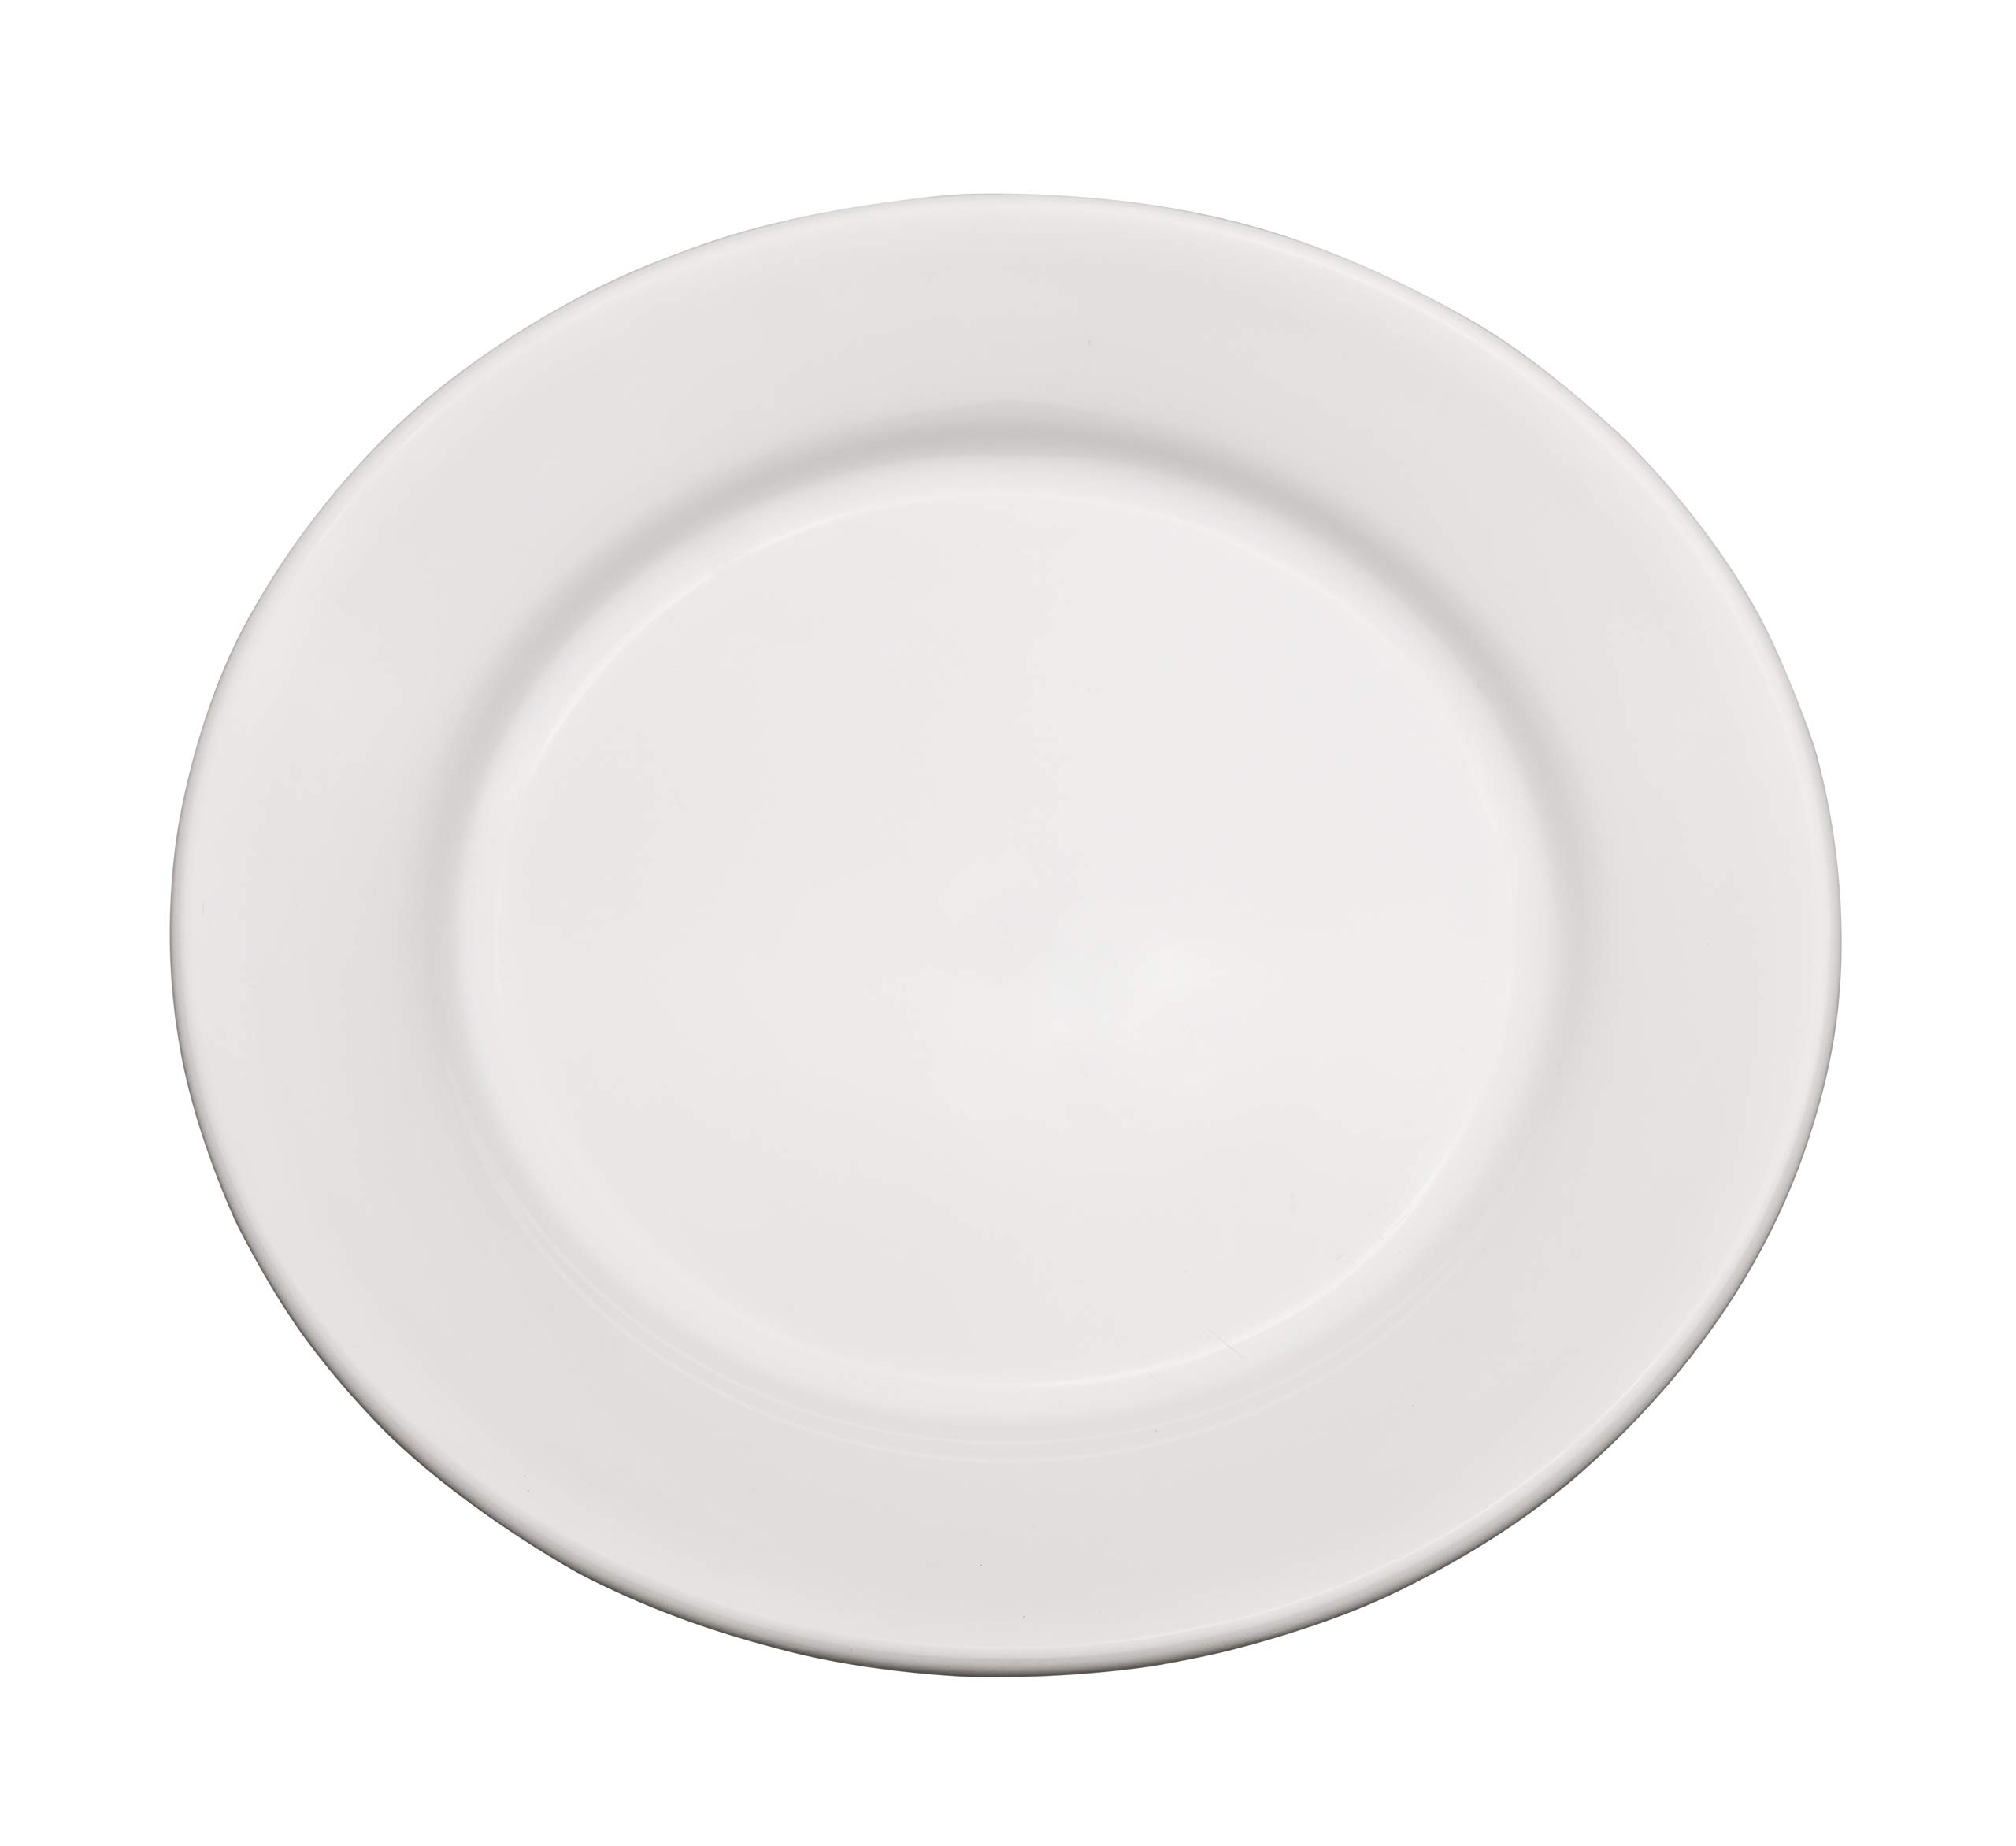 Chef Expressions 9'' Round Dinner Plate, Restaurant Quality, Vitrified Bright White Porcelain, Wide Rim, Rolled Edge (Case of 12)